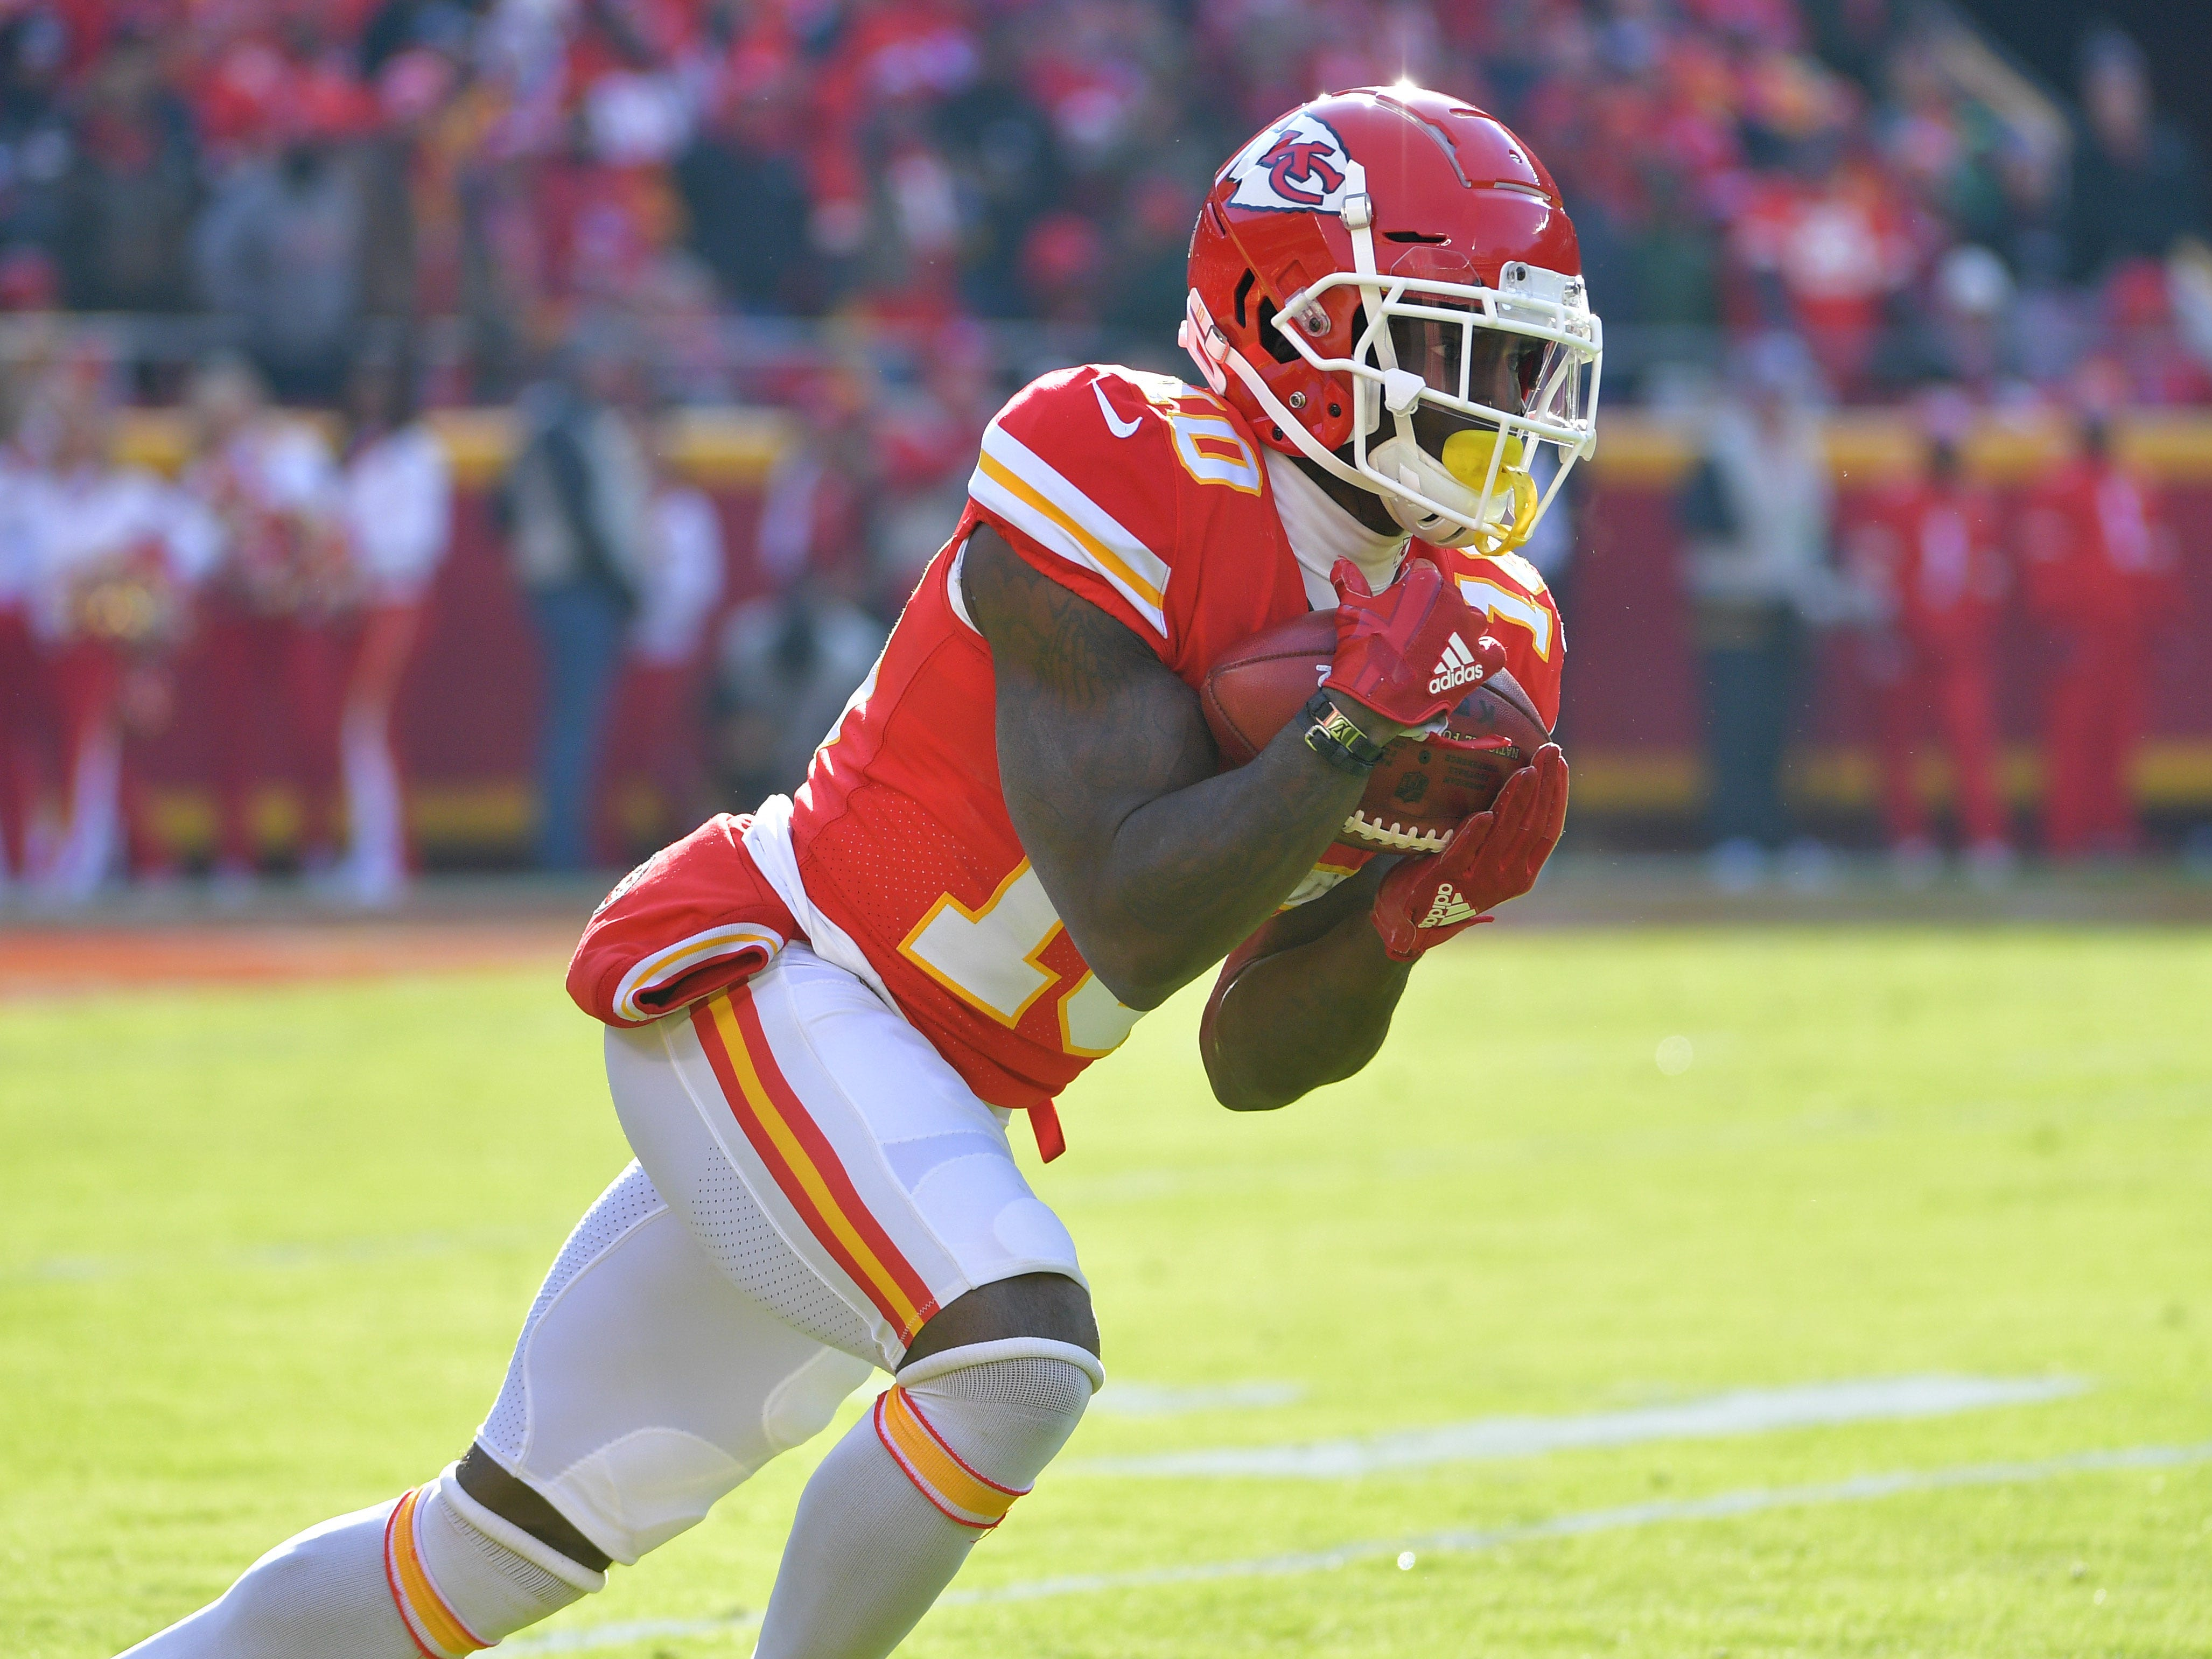 WR - Tyreek Hill, Kansas City Chiefs